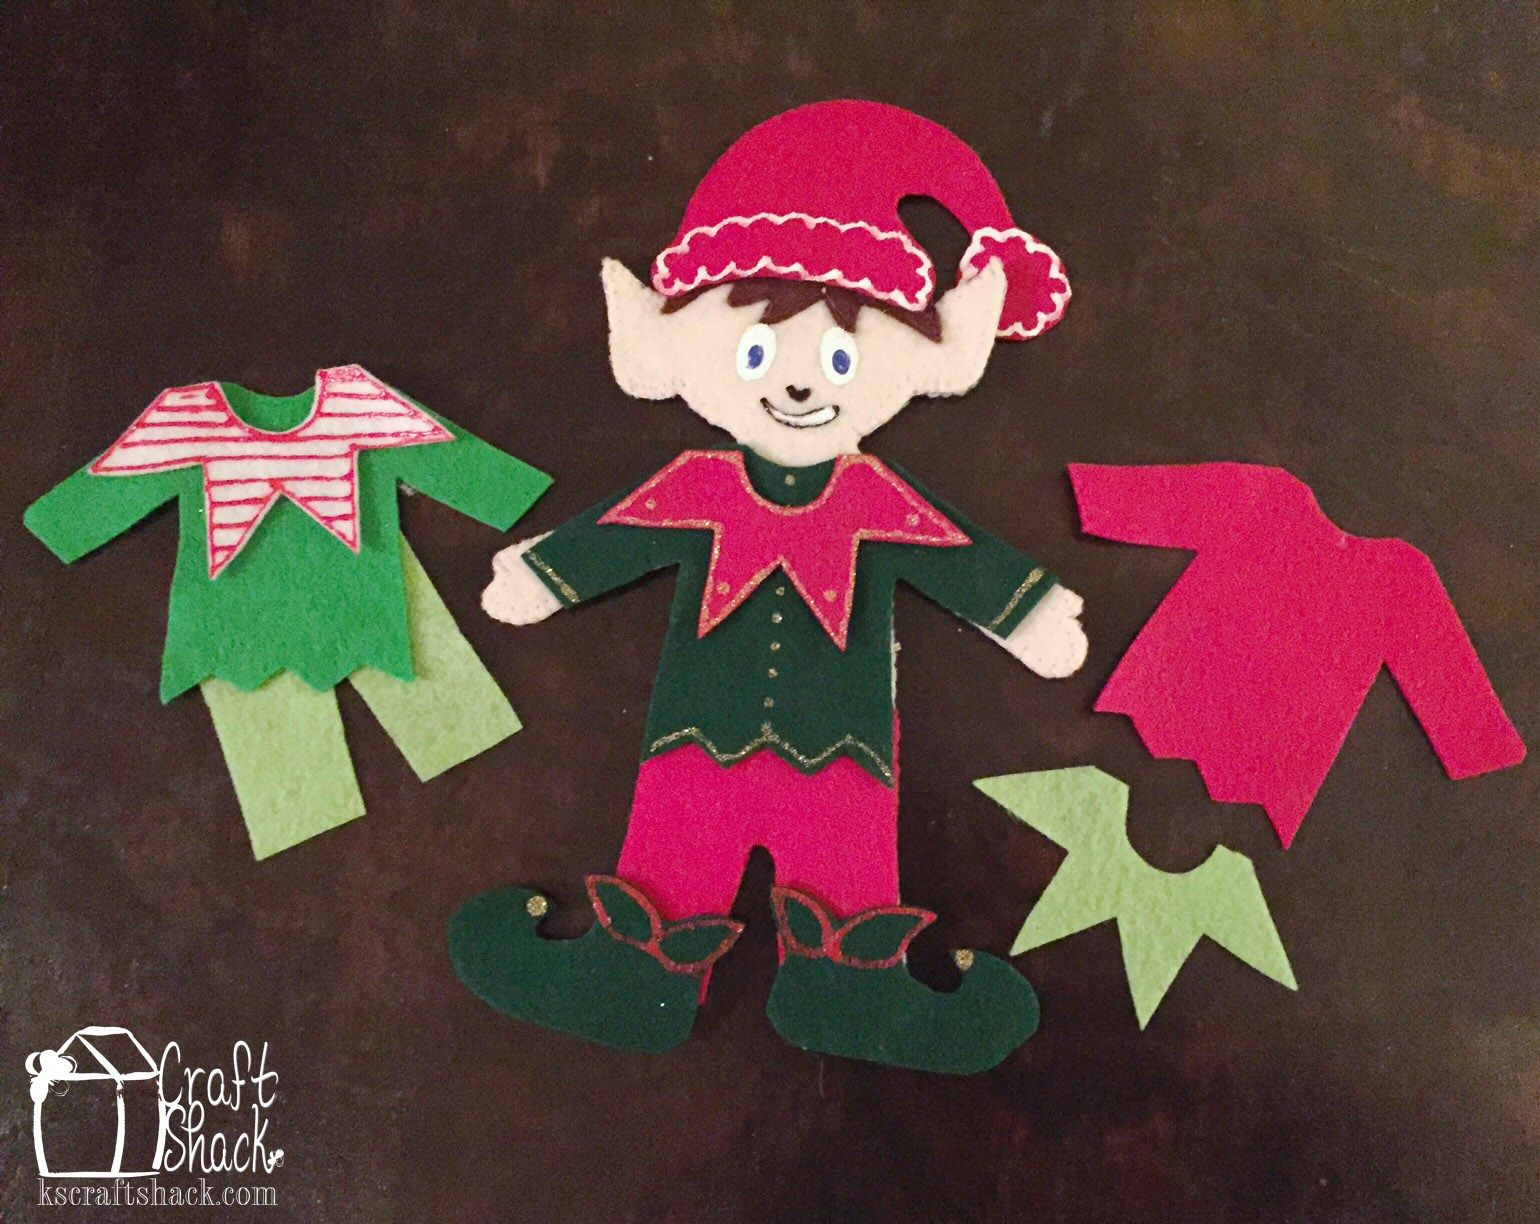 Elf On The Shelf Felt Dress Up Doll With Free Printable Template Elf Crafts Felt Christmas Ornaments Paper Doll Template